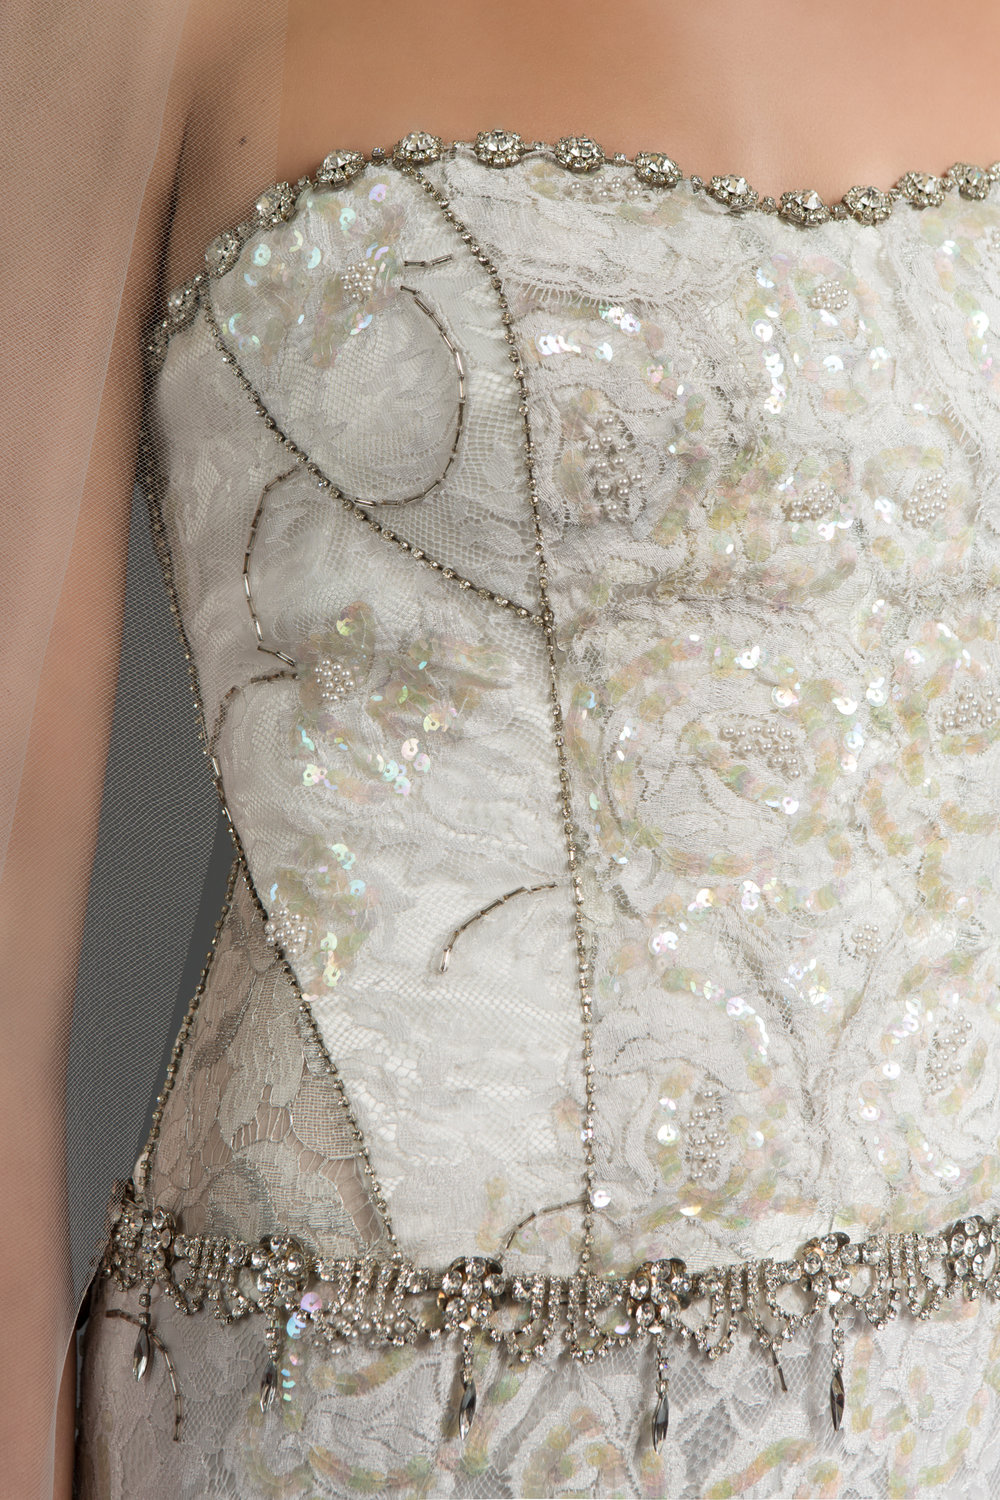 Details on the Elyse gown from Victoria Spector Bridal Couture